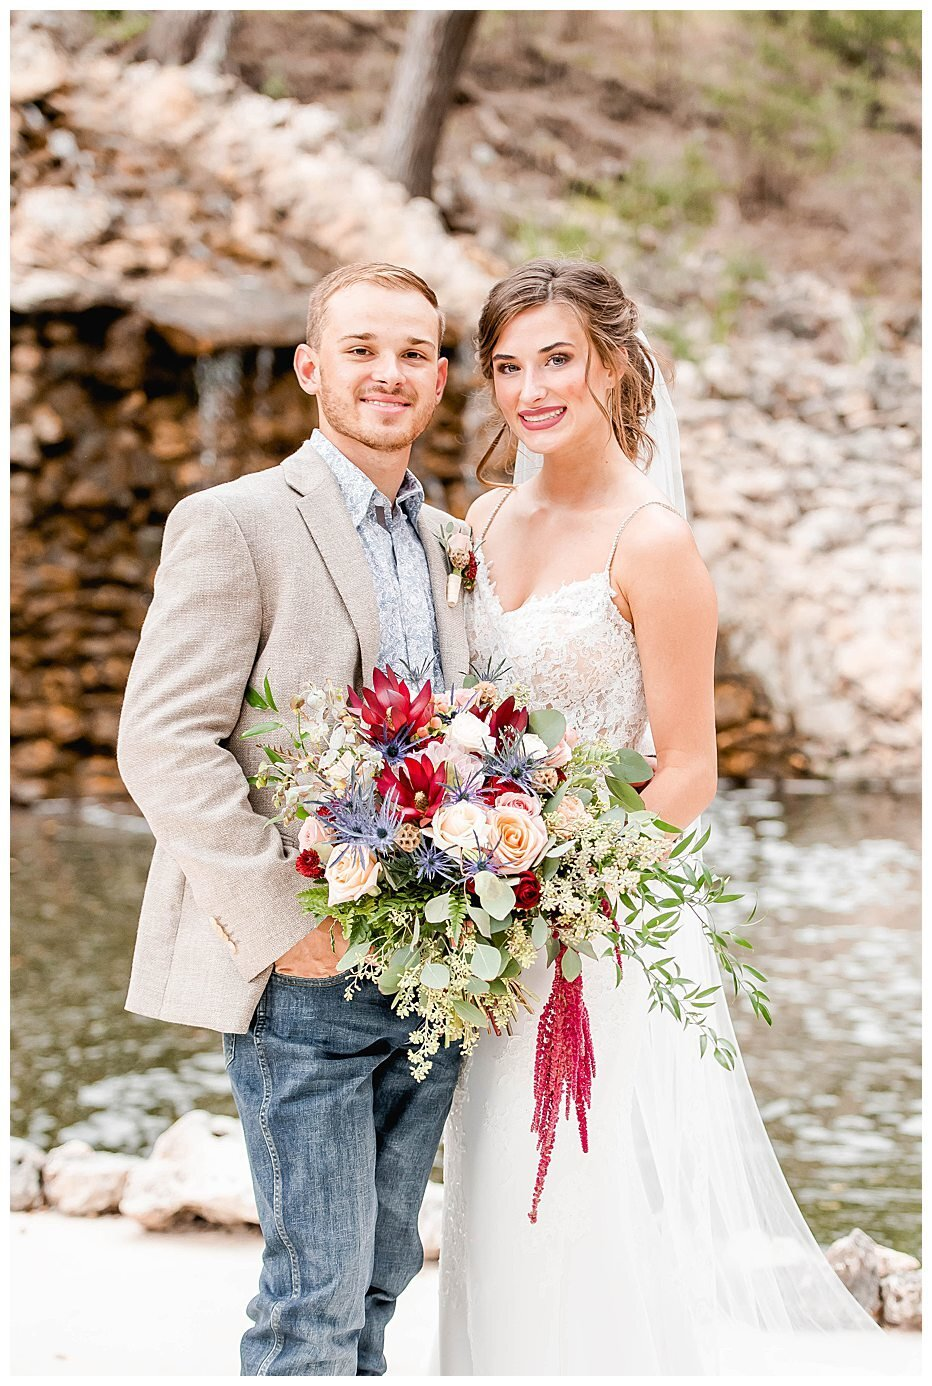 Under the Sun Photography | San Antonio, TX | Texas Wedding Photographer_0278